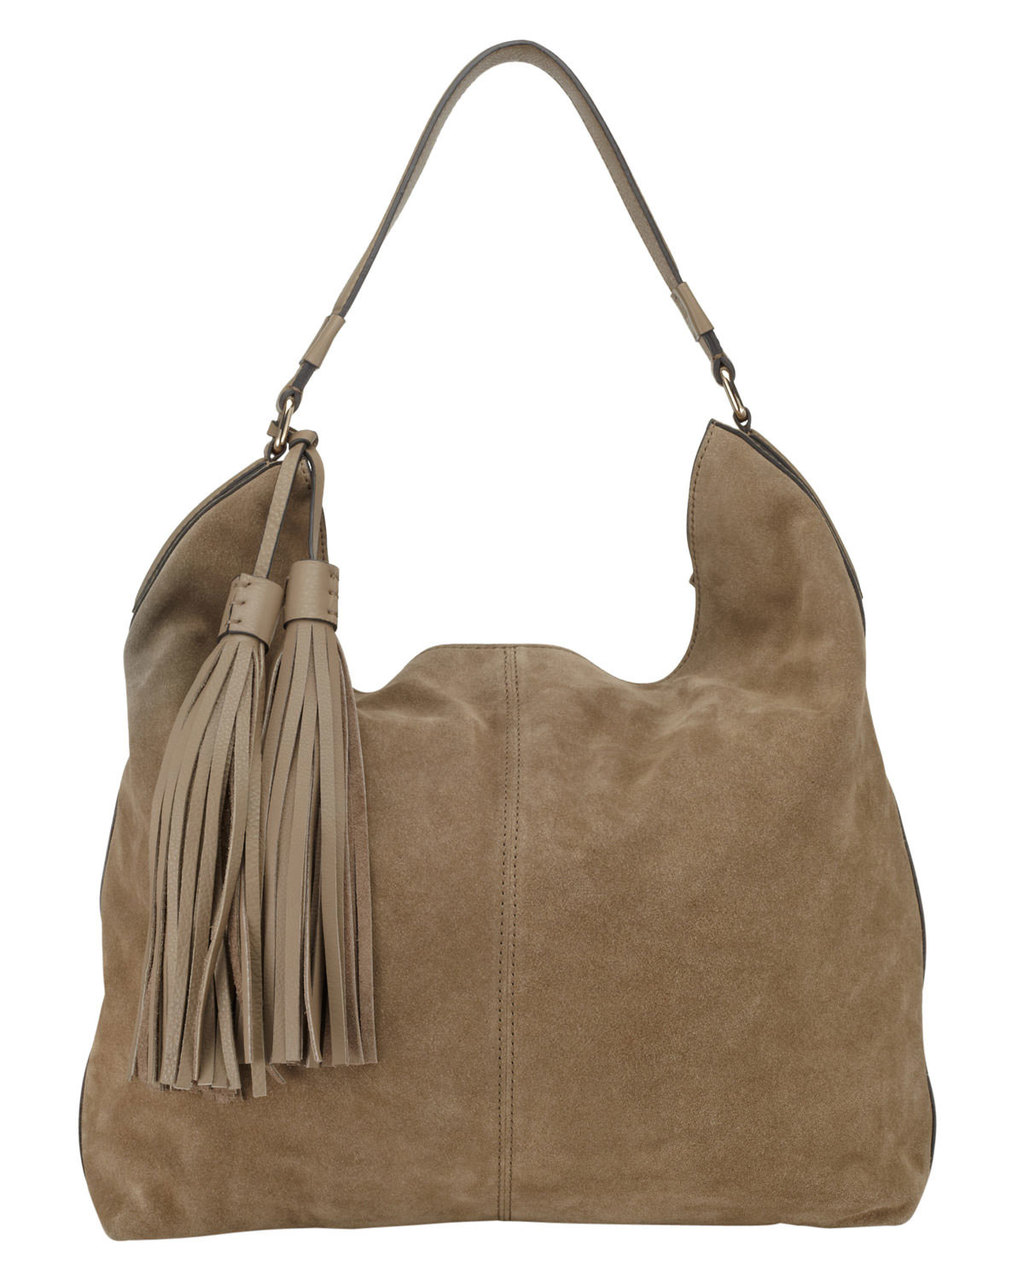 Harper Suede Hobo Bag - predominant colour: taupe; occasions: casual, creative work; type of pattern: standard; length: handle; size: standard; material: suede; embellishment: tassels; pattern: plain; finish: plain; style: hobo; season: s/s 2016; wardrobe: investment